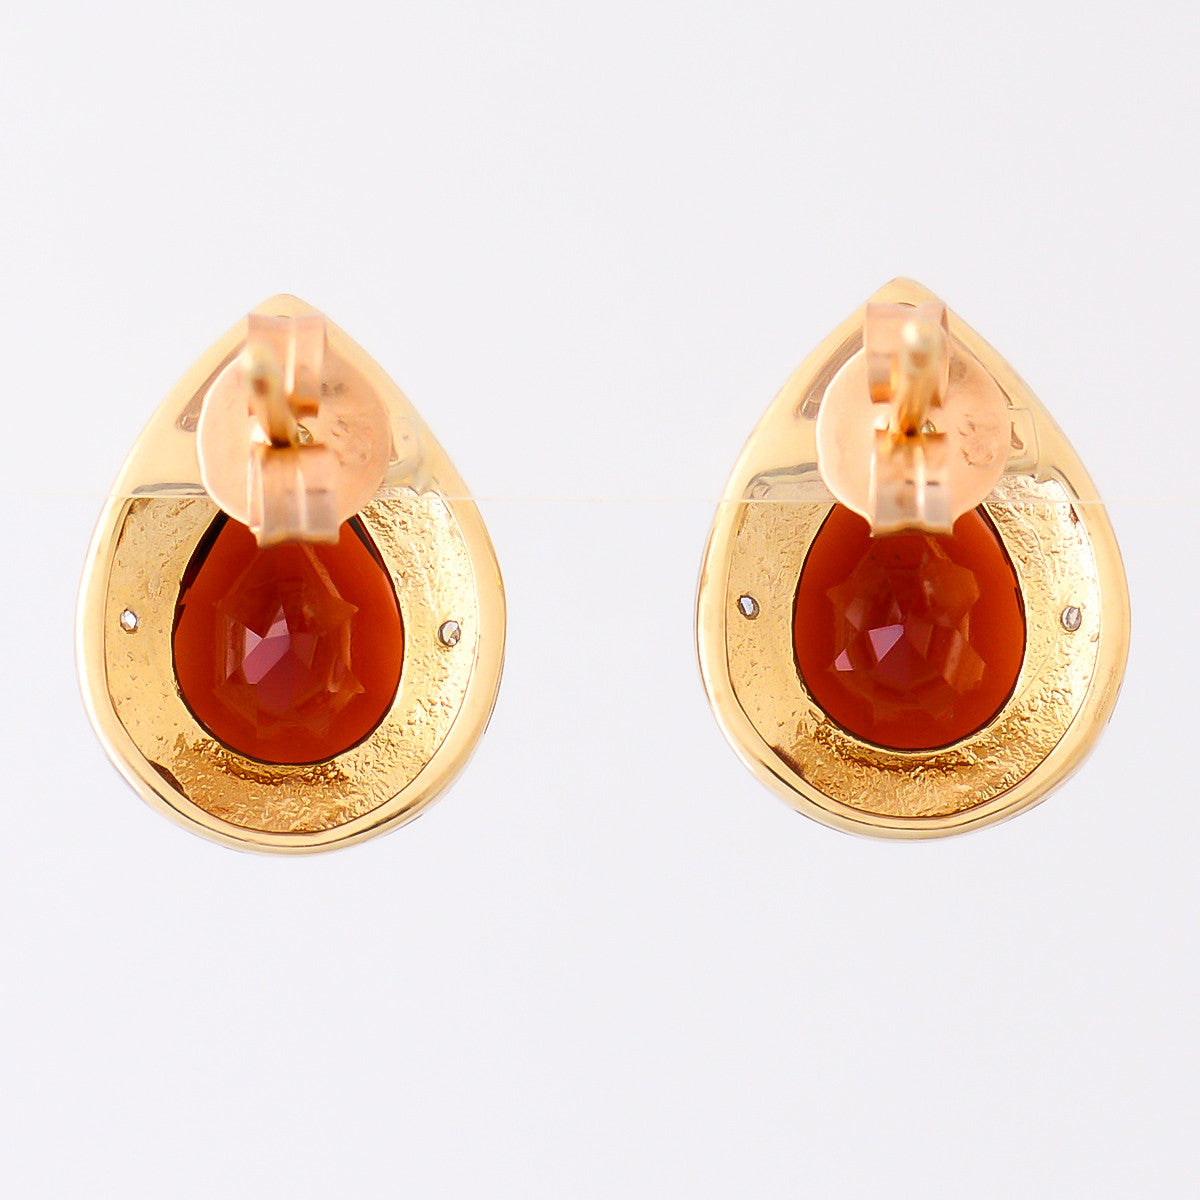 9K SOLID GOLD 4.30CT NATURAL PEAR CUT GARNET EARRINGS WITH EIGHT DIAMONDS.